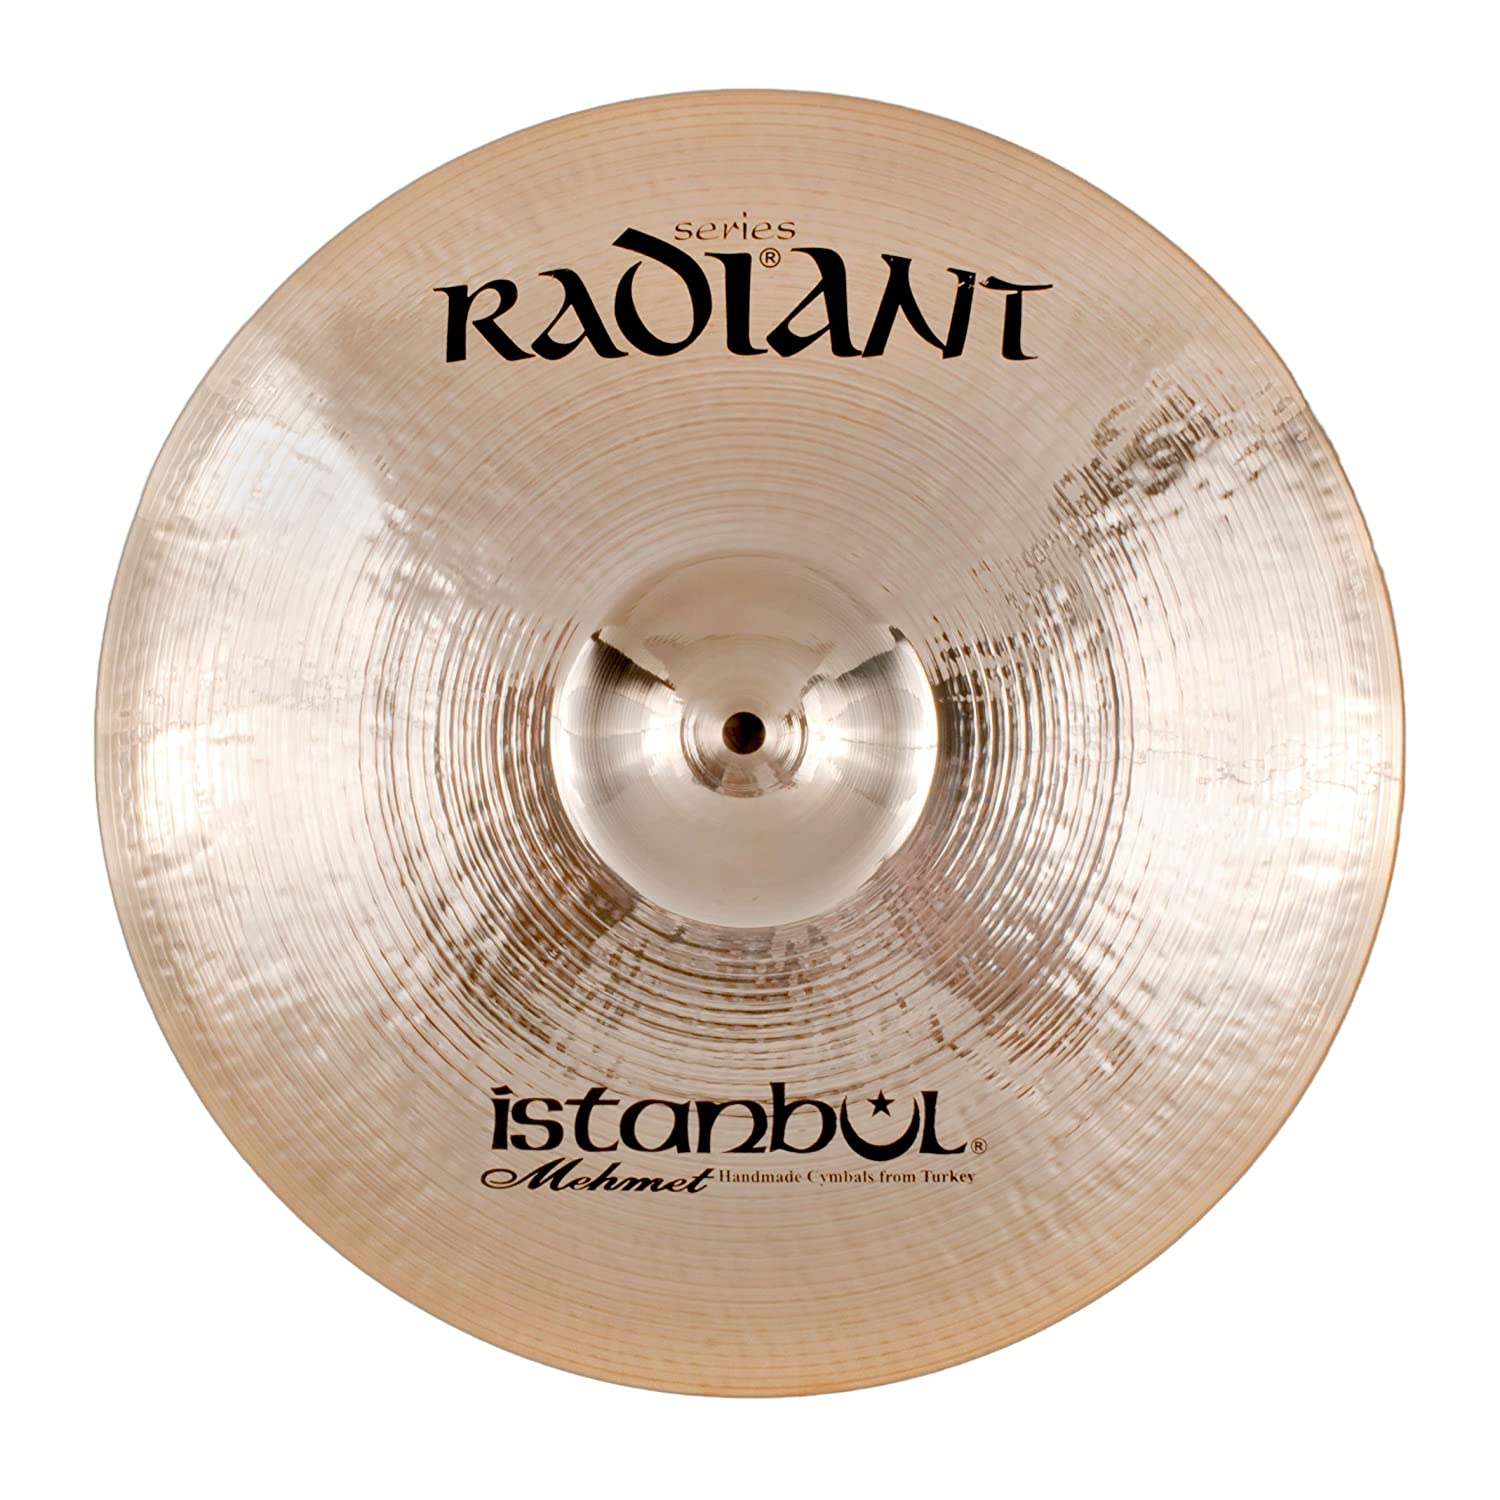 Istanbul Mehmet Cymbals Modern Series Radiant Rock Crash Cymbals R-CRR (18